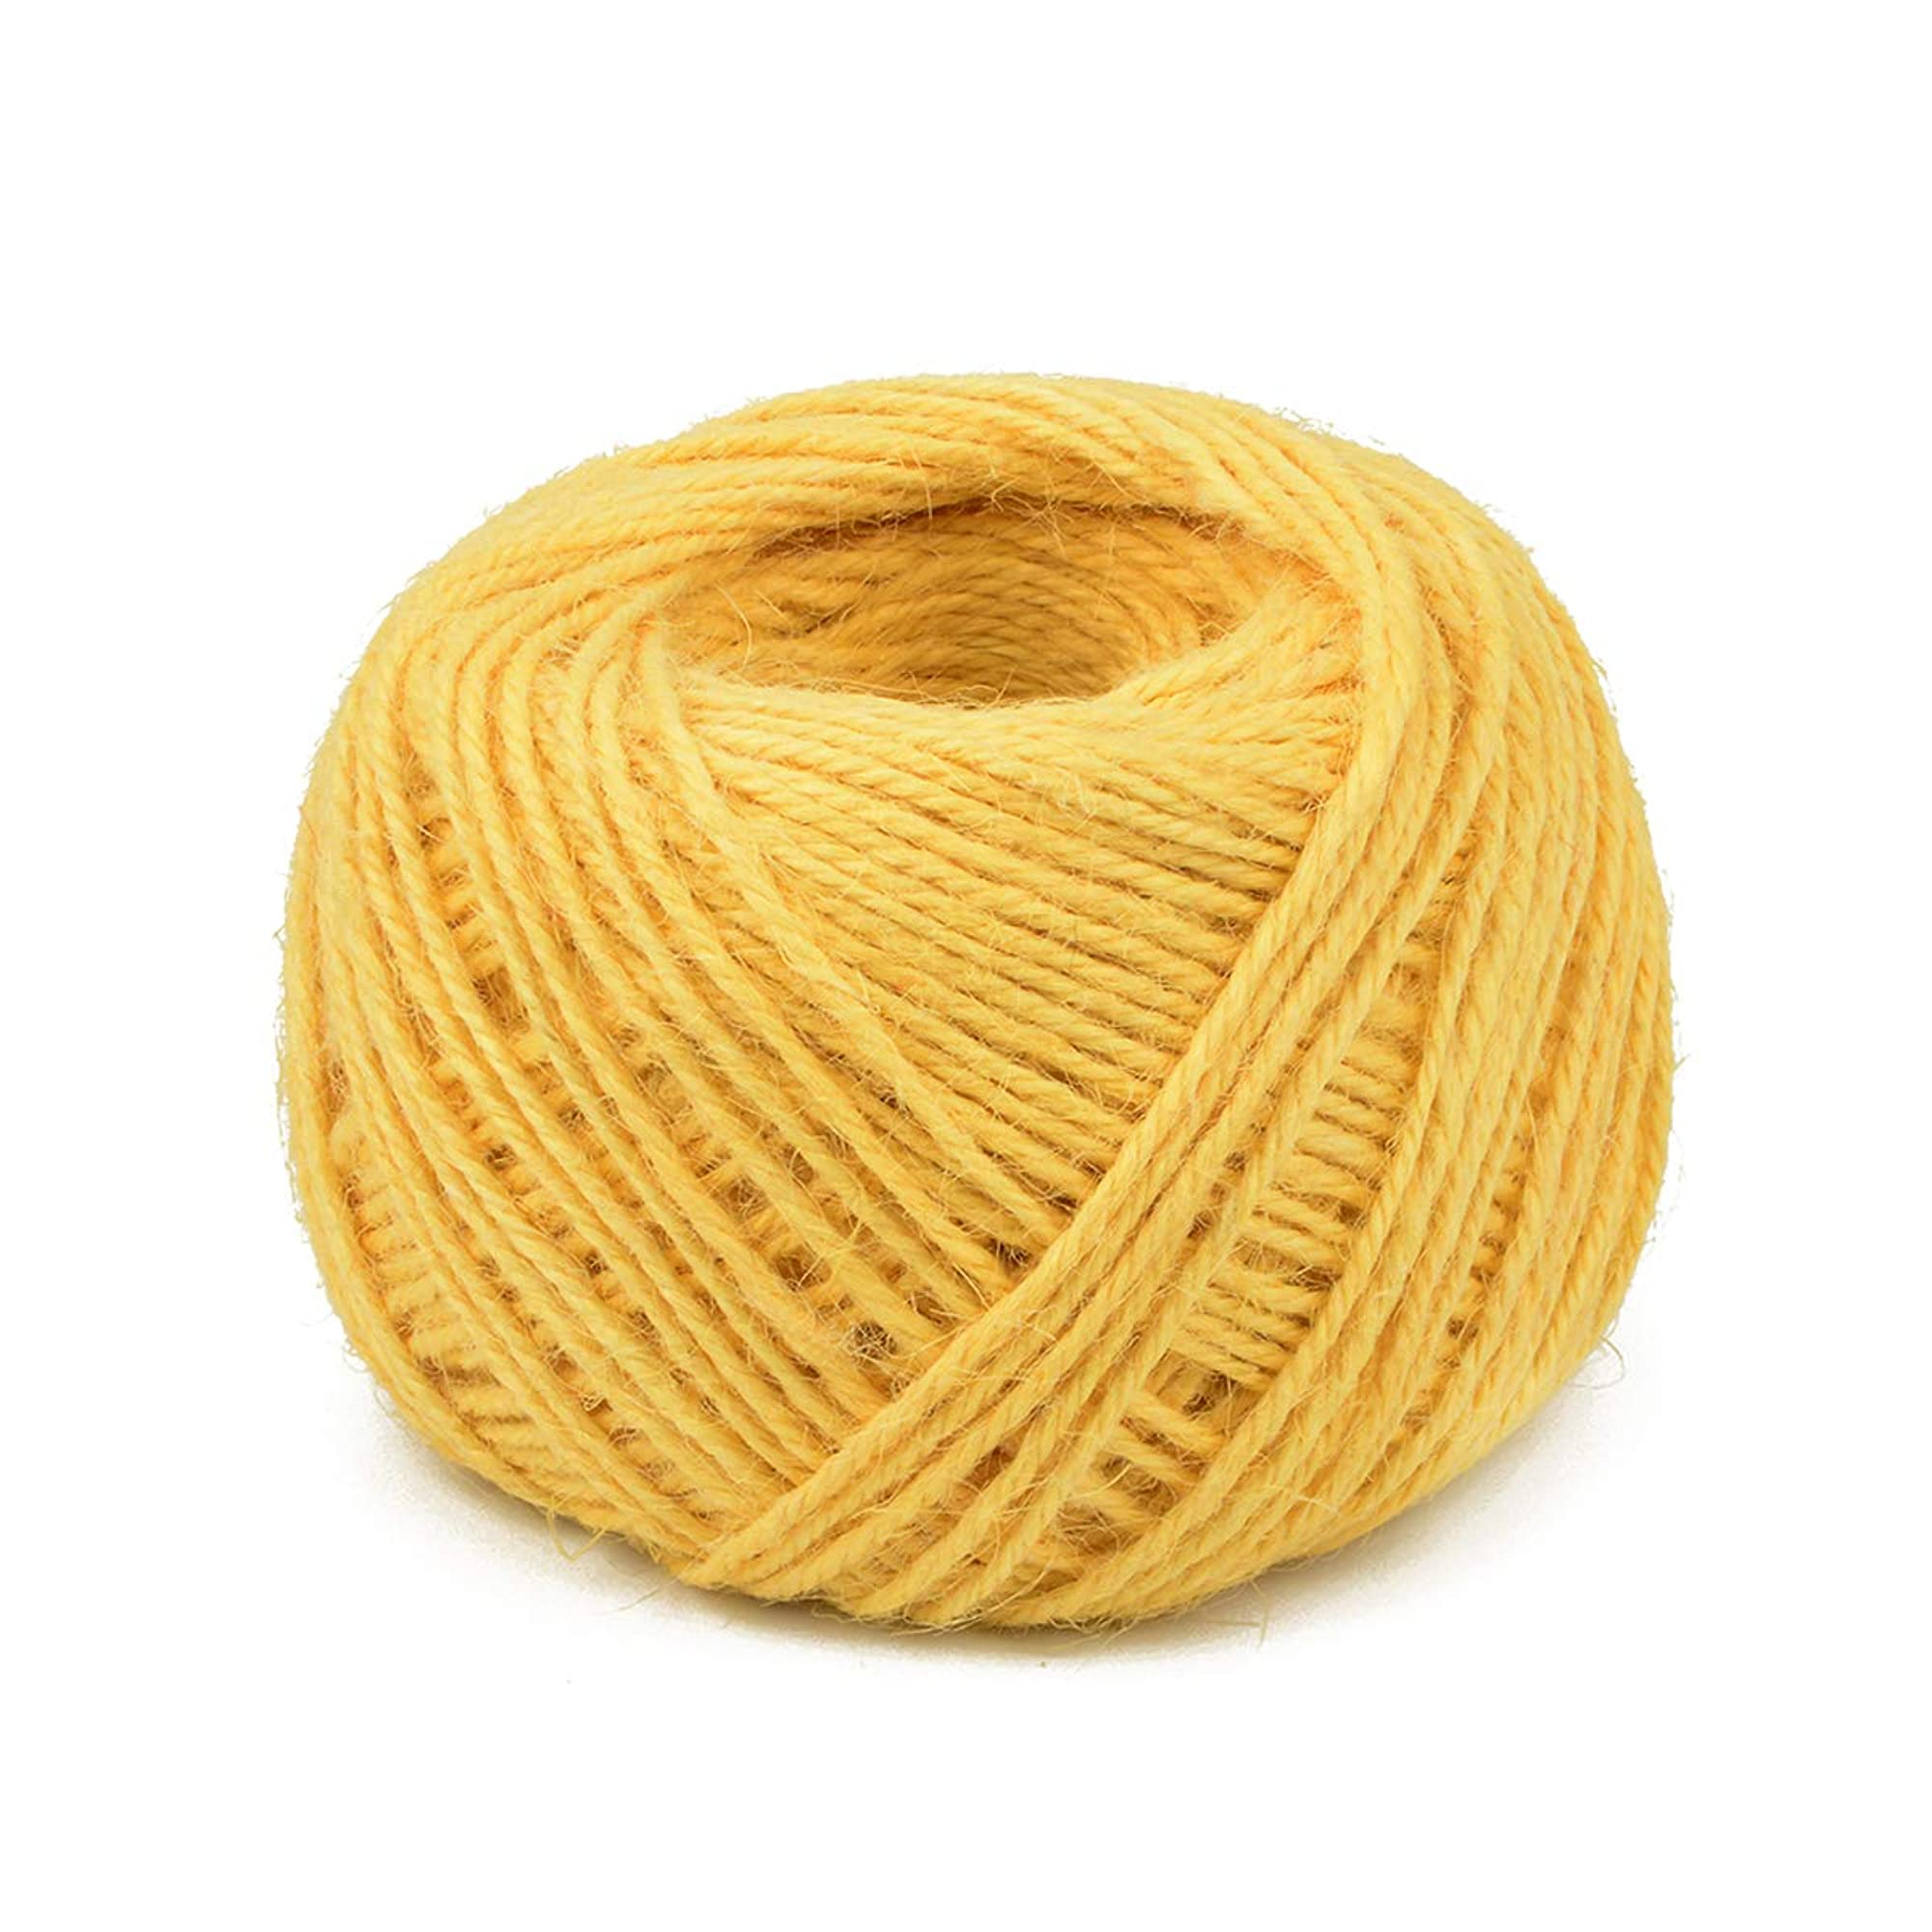 Multi Purpose Jute Twine String